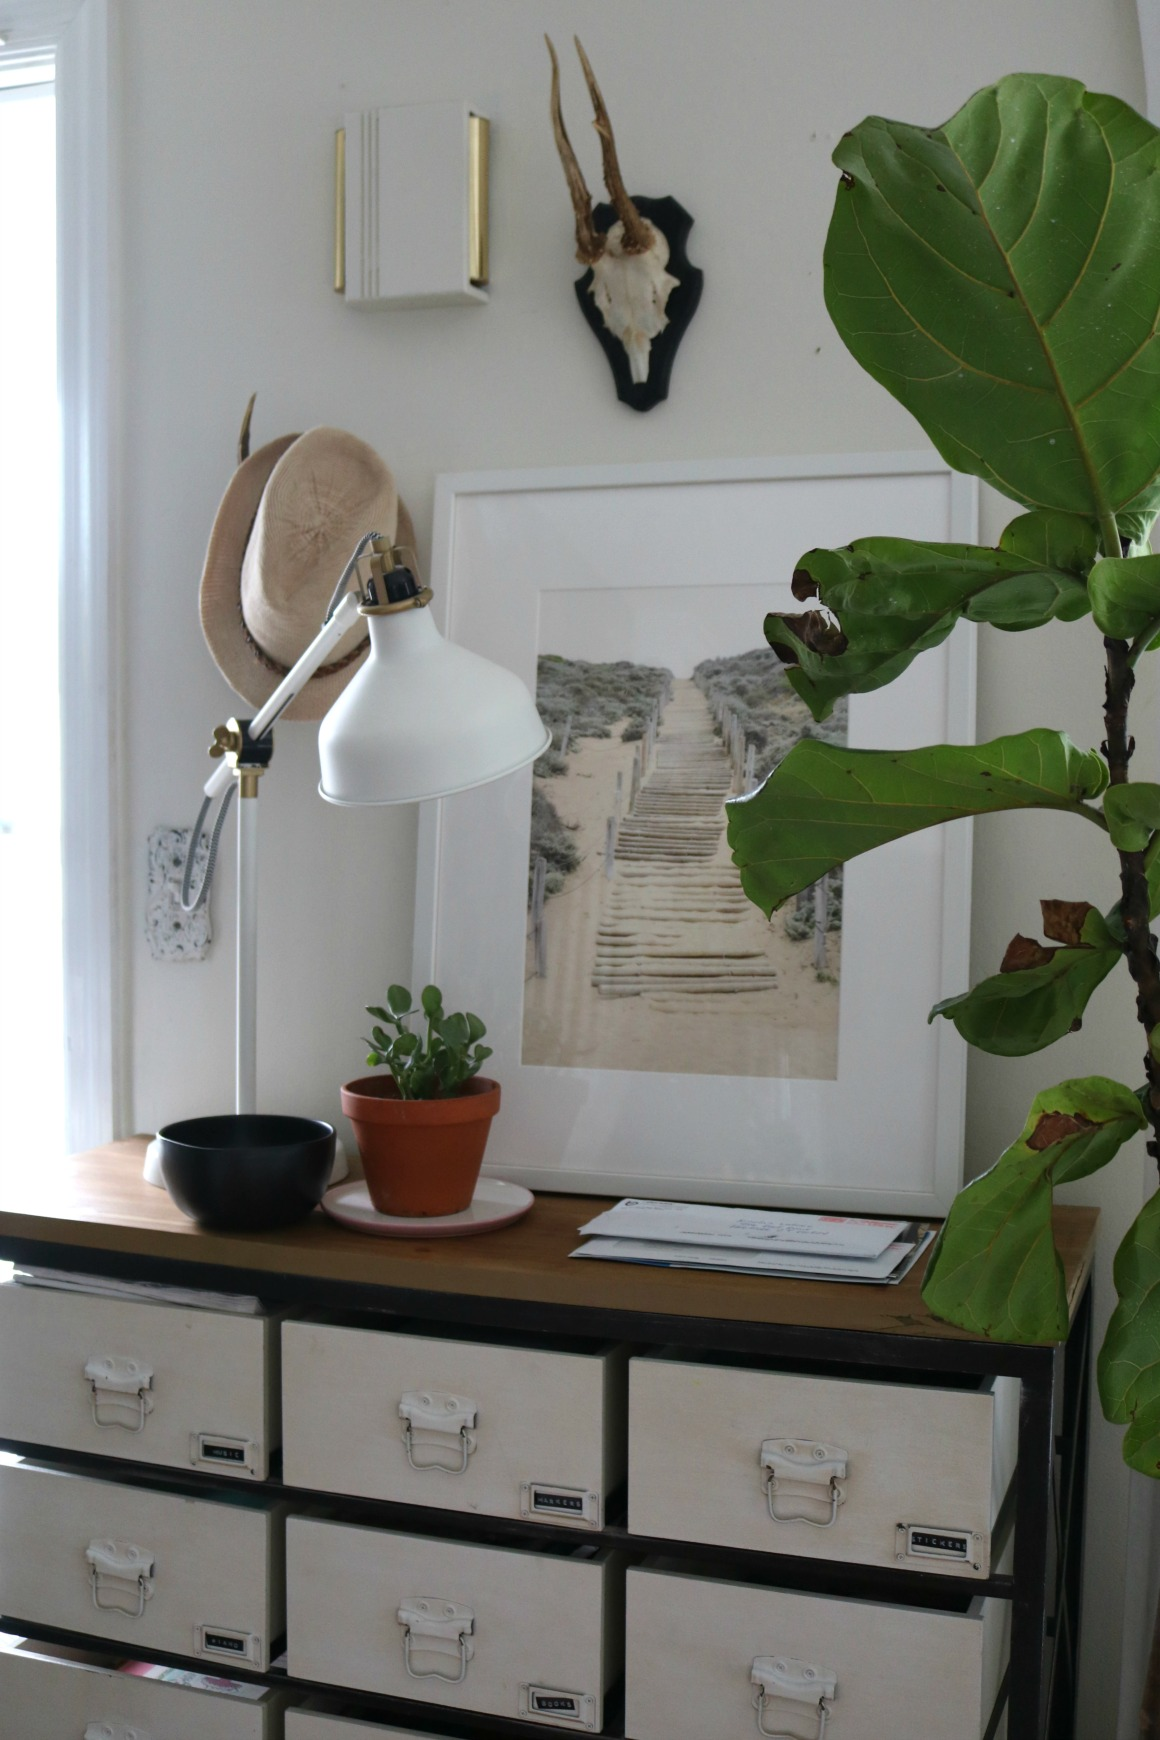 Spring Decor in our Front Room and Built-in Bookcases